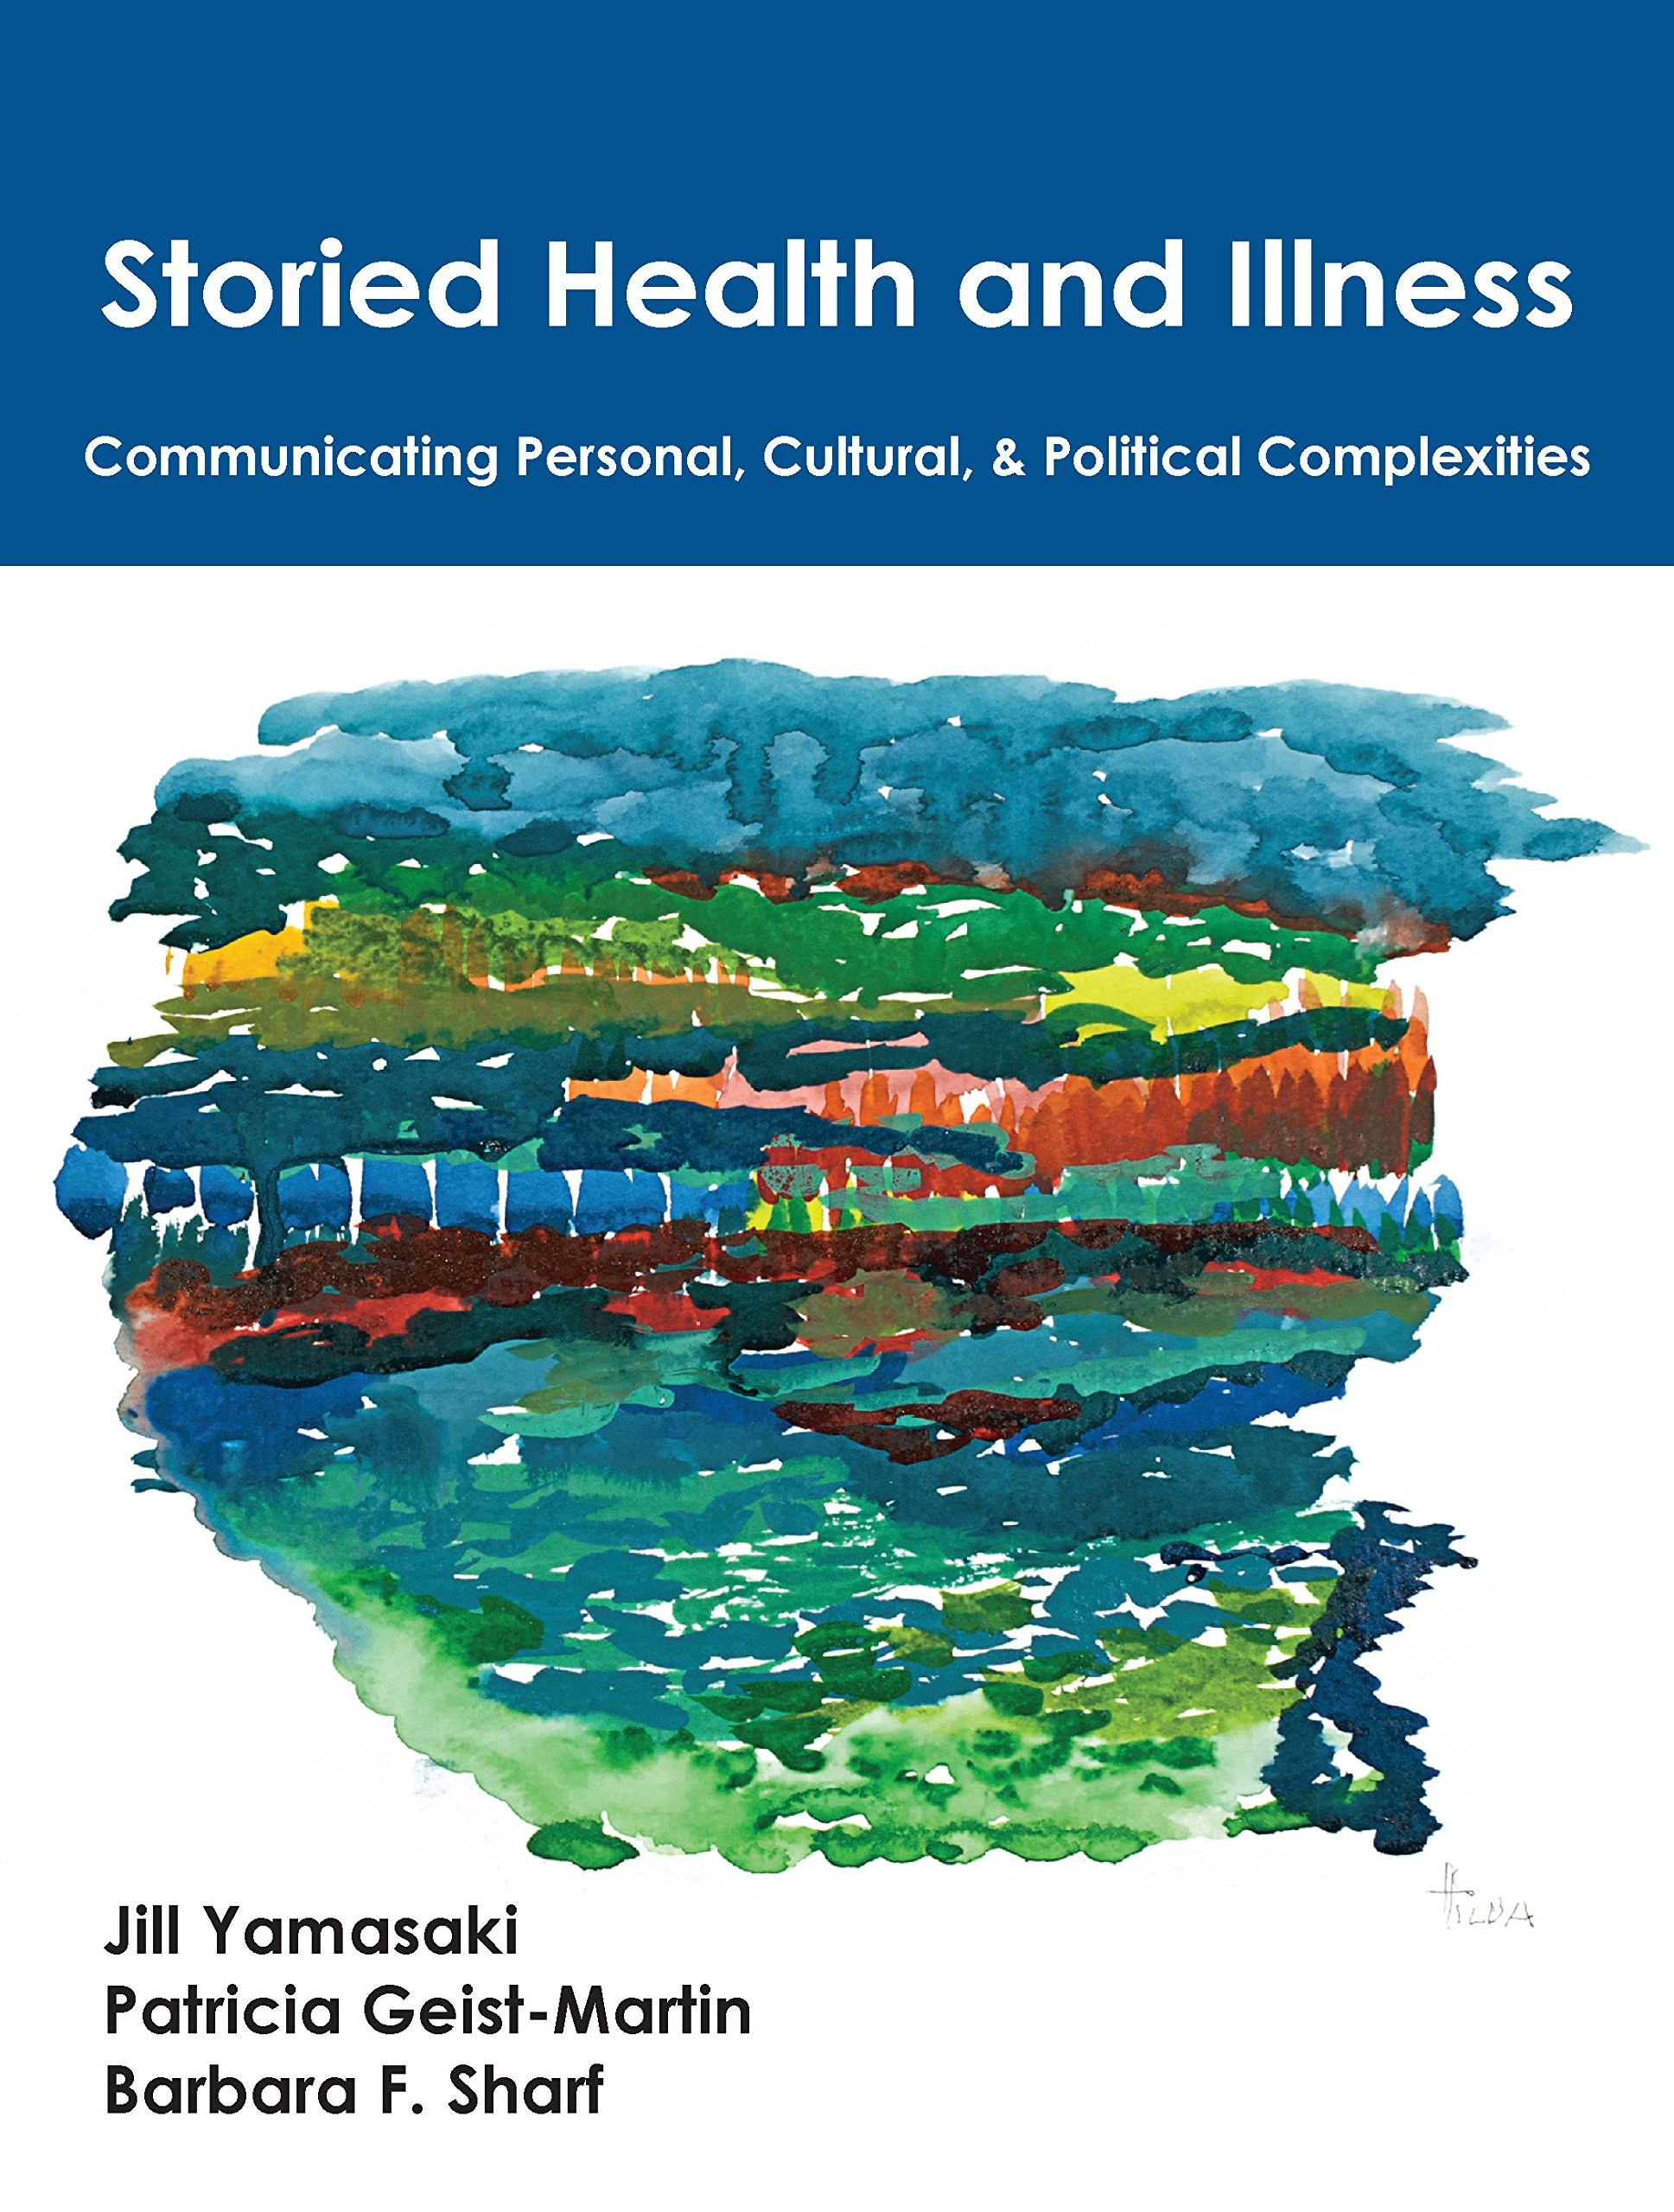 Storied Health and Illness: Communicating Personal, Cultural, and Political Complexities